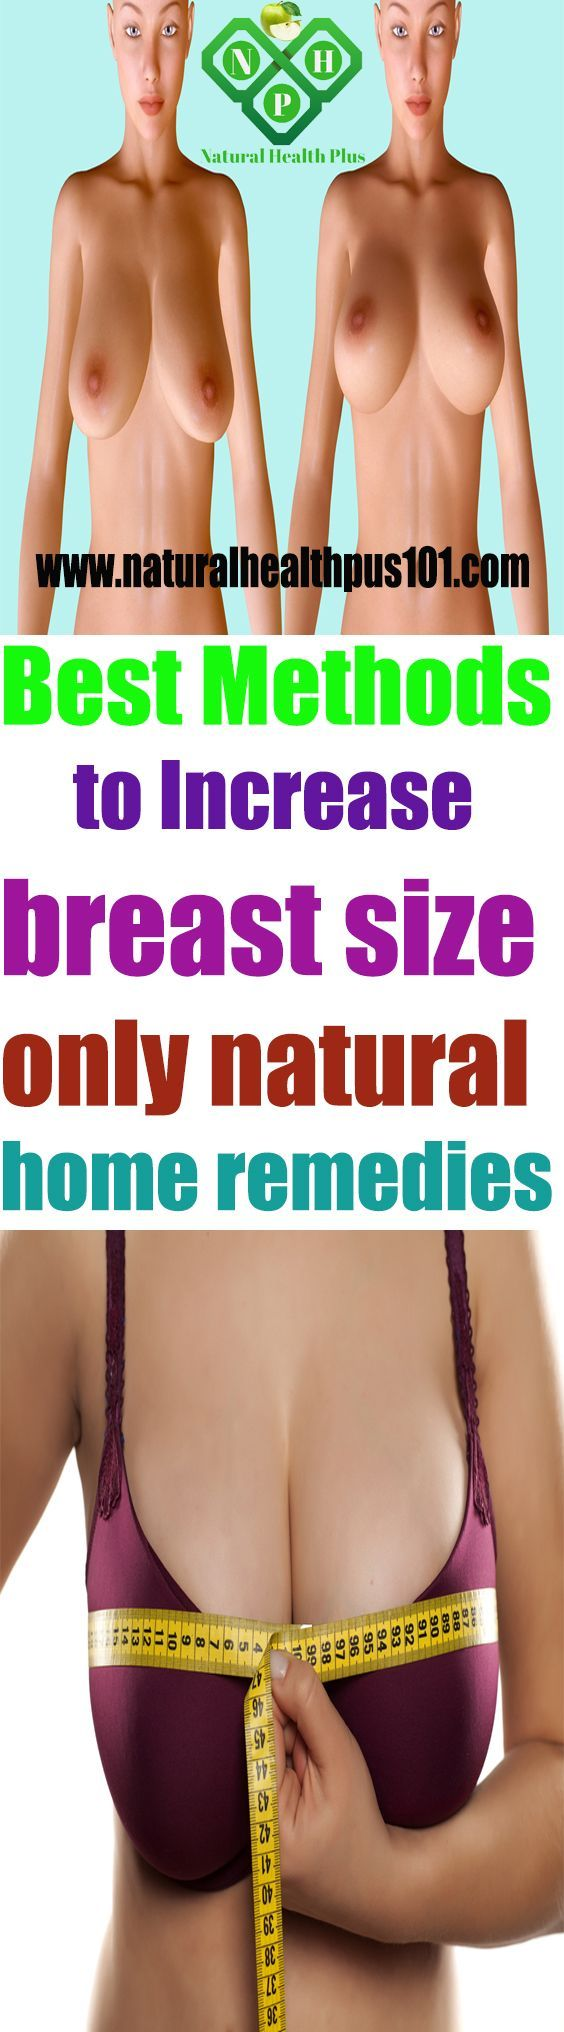 home remedies to increase breast size fast, home remedies for breast growth  fast, breast increase food, how to enlarge breast with massage, ...